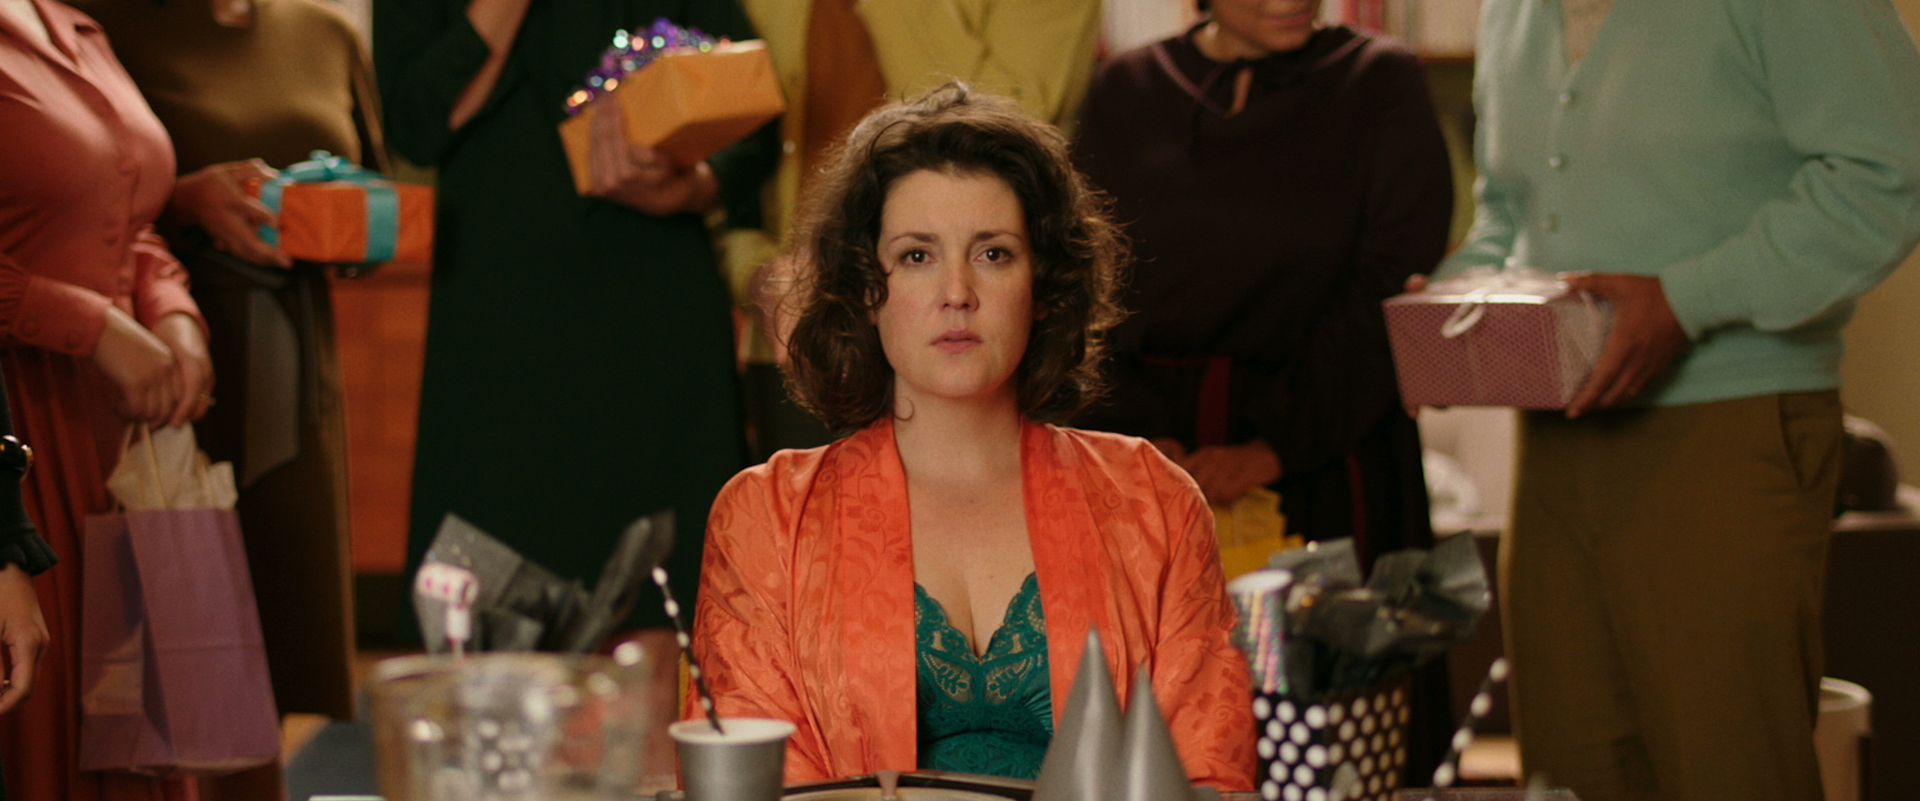 "Melanie Lynskey in ""The Birthday Party"" in XX, a Magnet release.  Photo courtesy of Magnet Releasing."